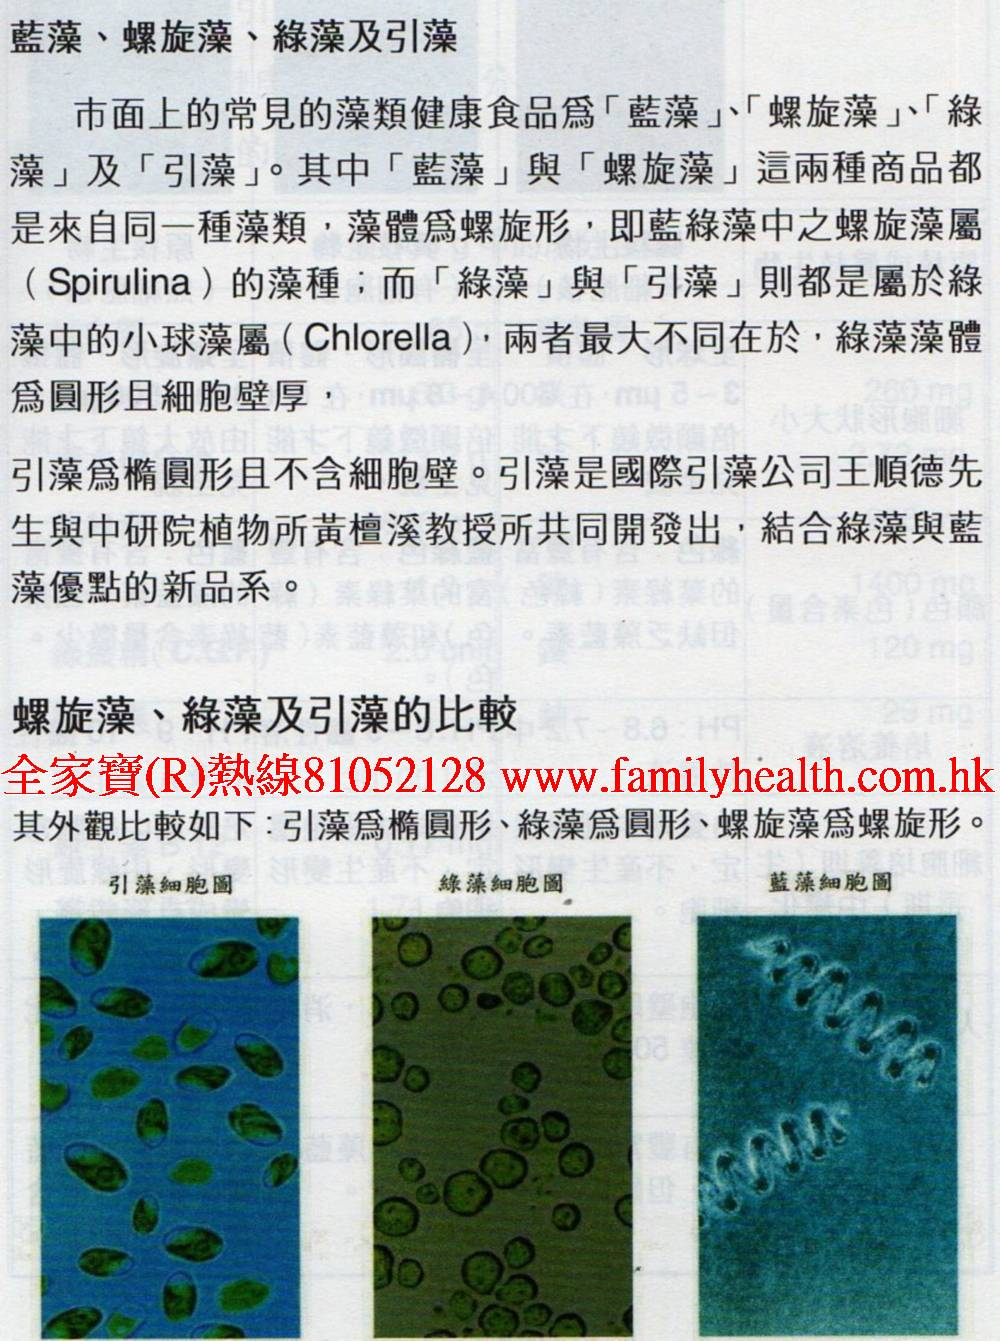 http://www.familyhealth.com.hk/files/full/930_3.jpg